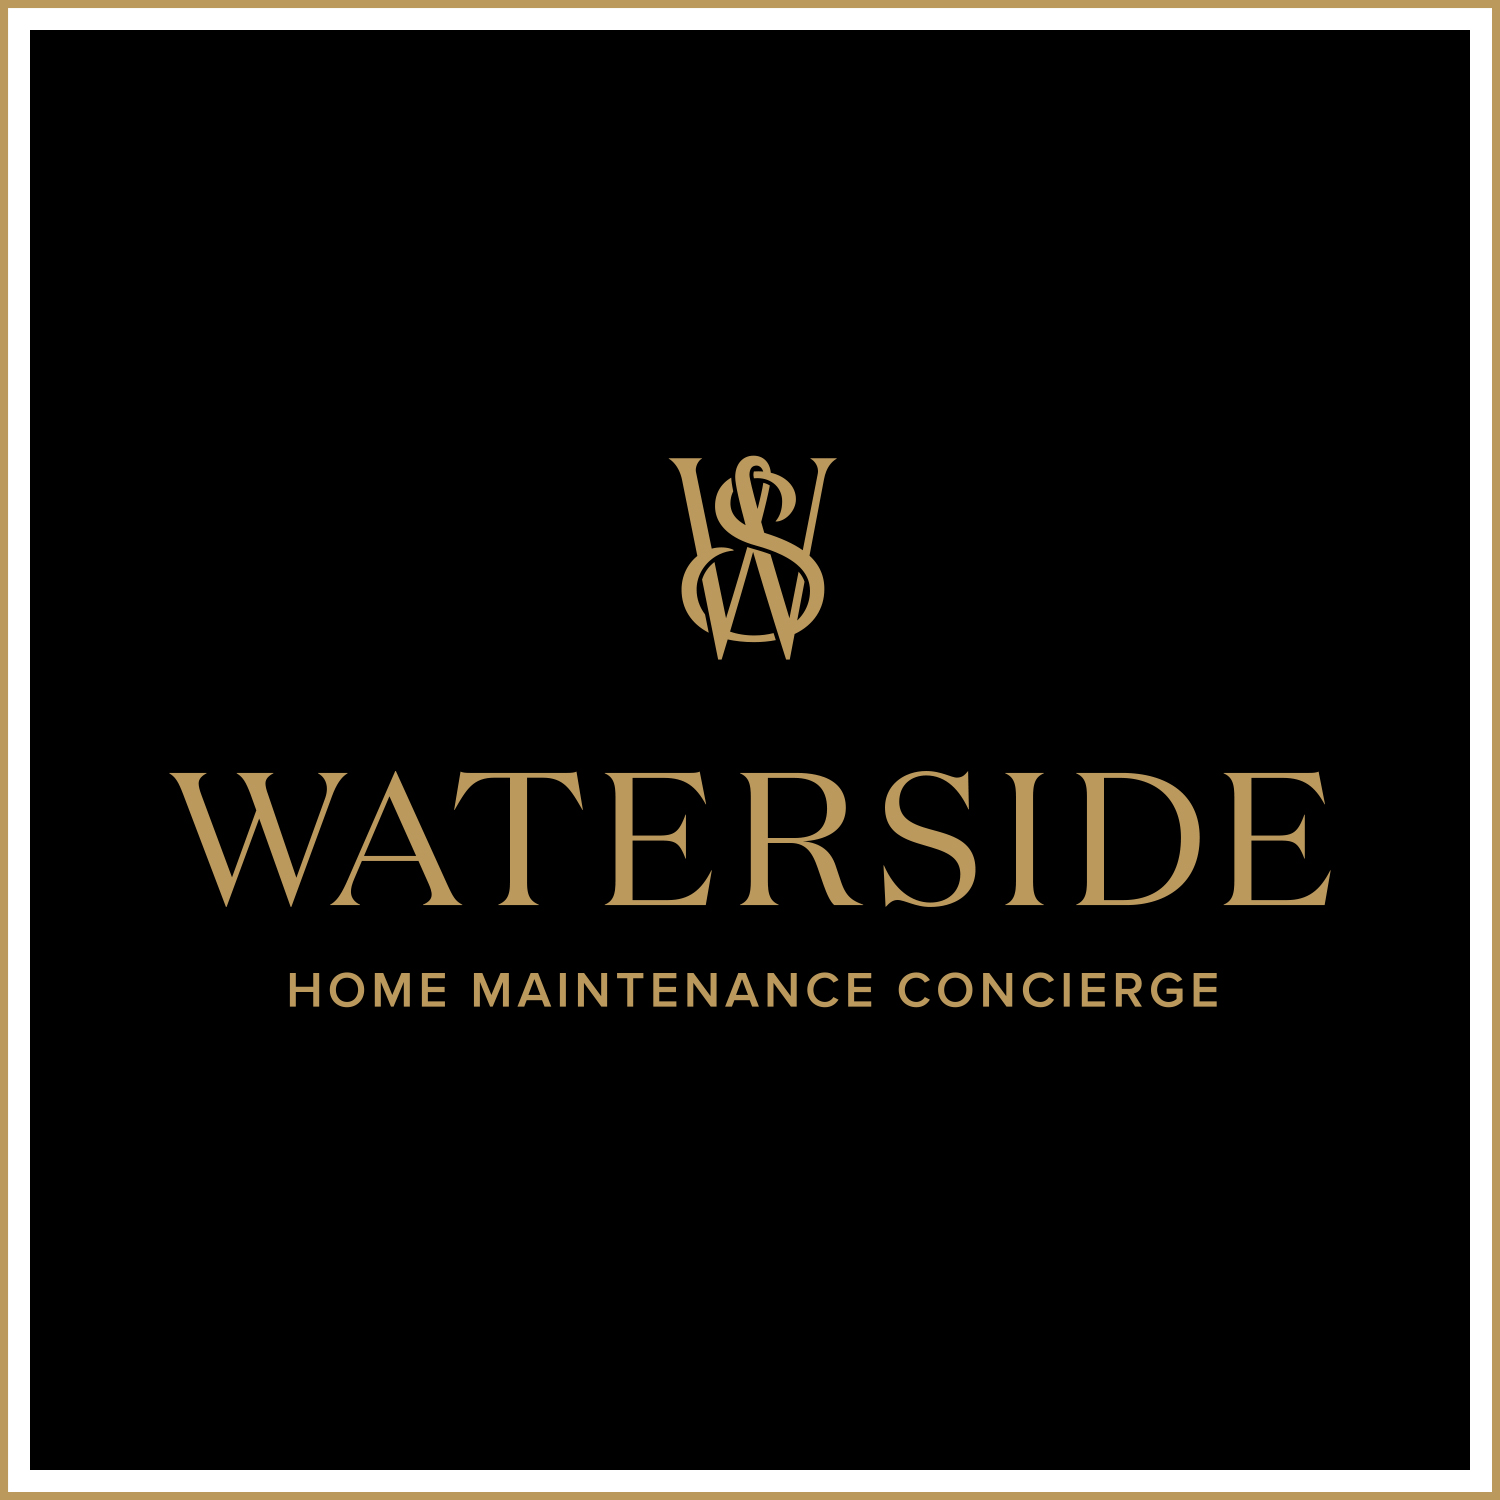 Home Repair Companies Home Before Nov 30 2017 Waterside Companies